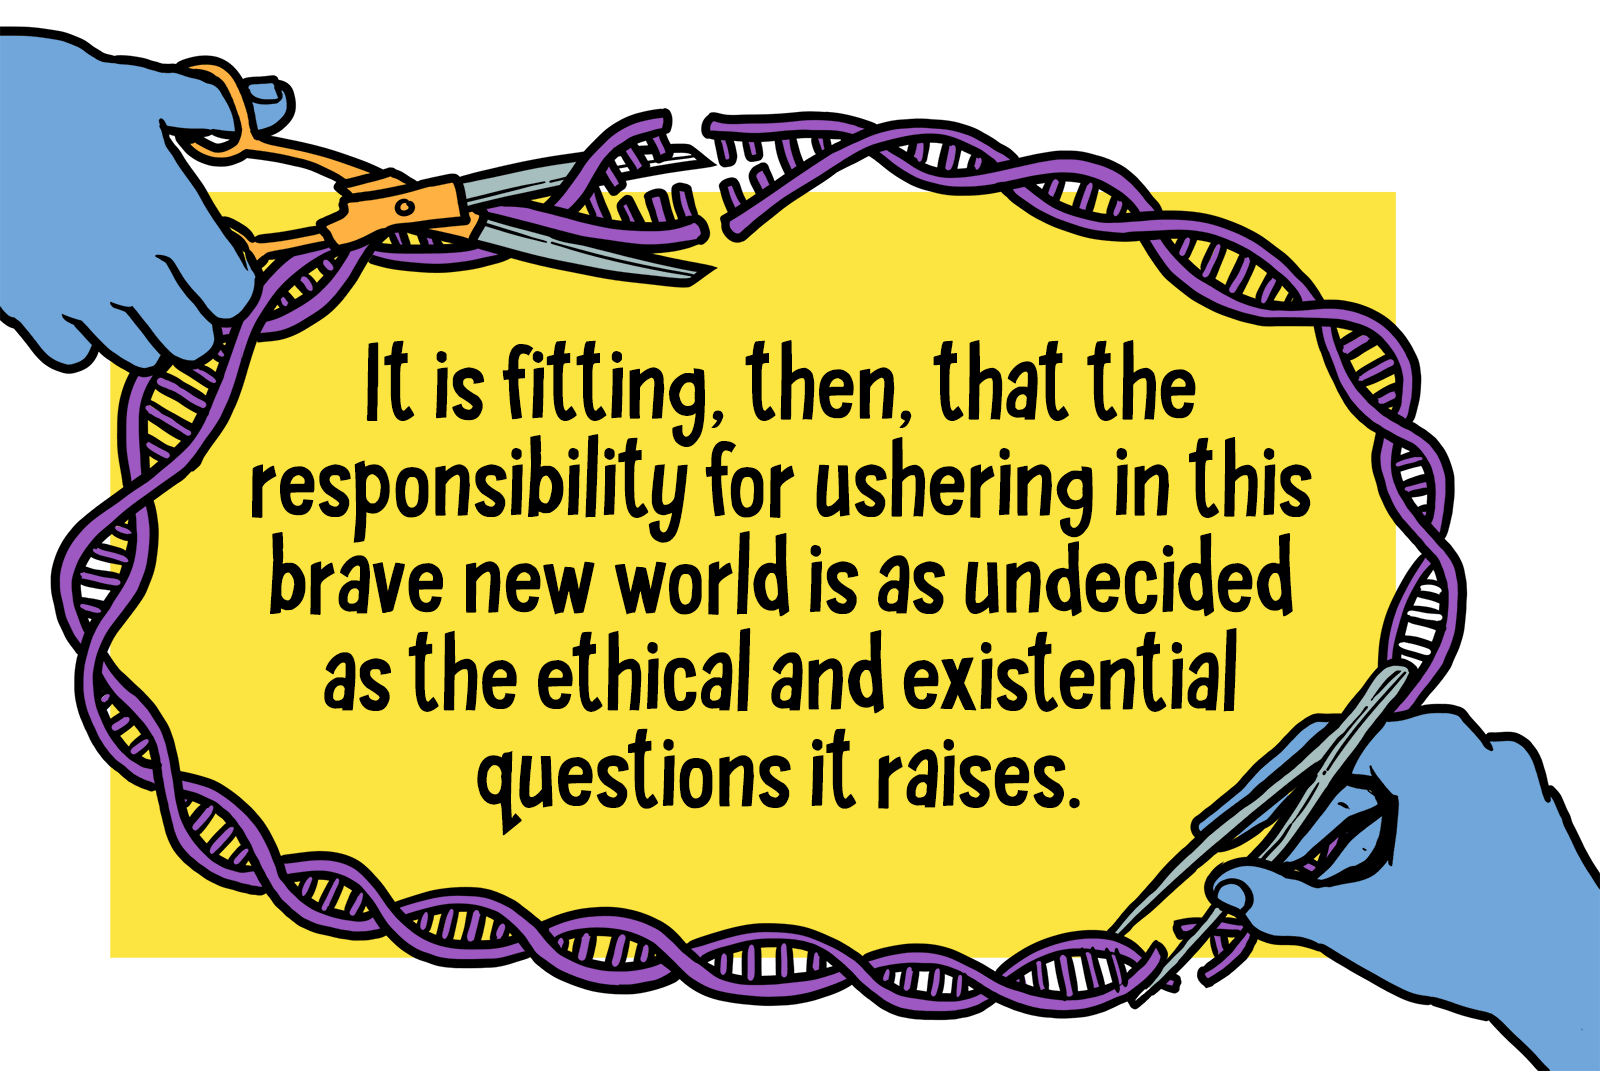 """Text reads: """"It is fitting then, that the responsibility for ushering in this brave new world is as undecided as the ethical and existential questions it raises."""" Bordering the text are strands of DNA. A hand is snipping parts of it, and a glue bottle is featured at the top left corner of the border."""